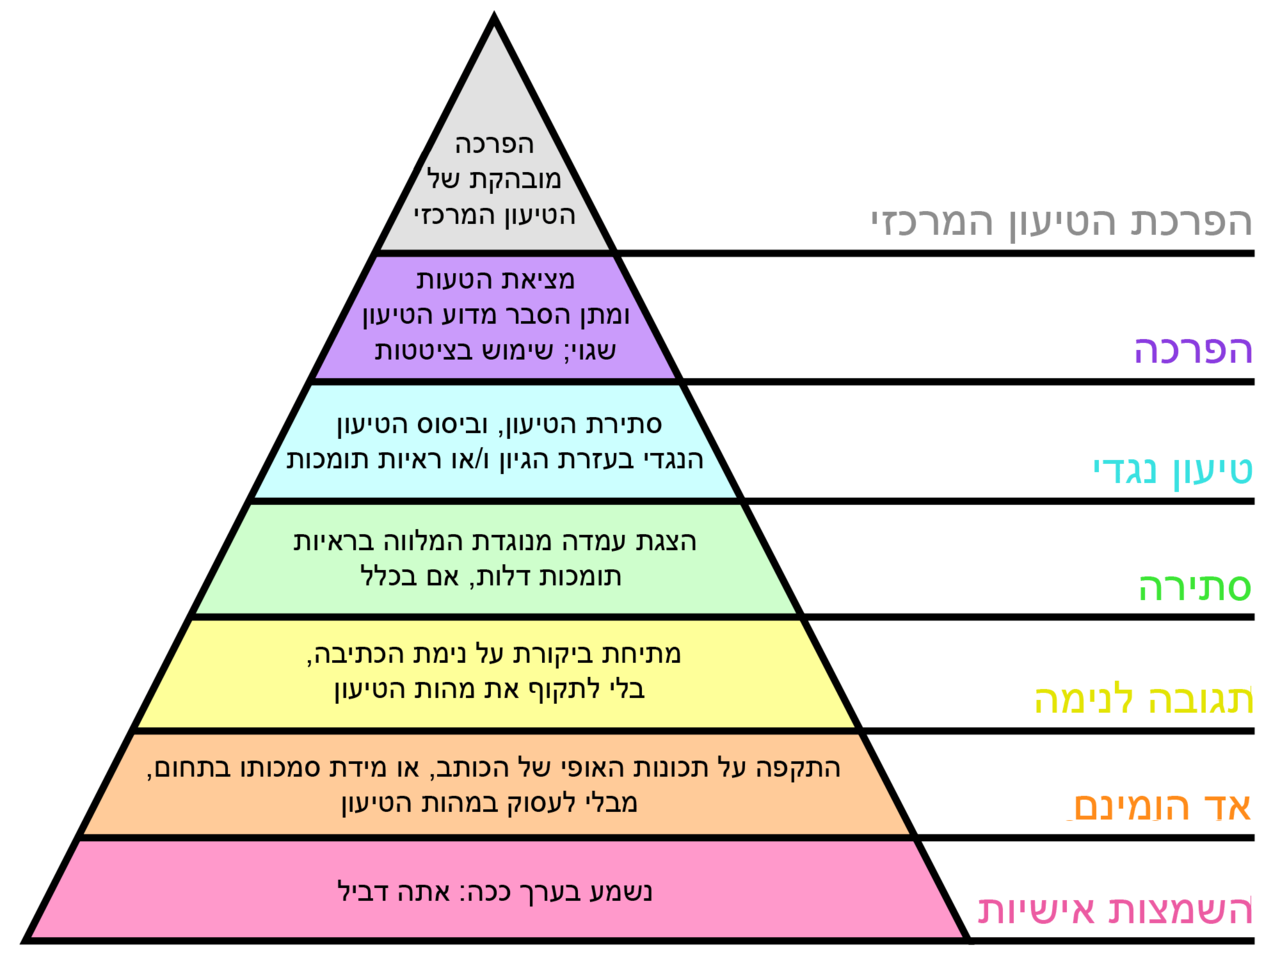 https://upload.wikimedia.org/wikipedia/commons/thumb/a/a5/Grahams_Hierarchy_of_Disagreement-Hebrew.png/1280px-Grahams_Hierarchy_of_Disagreement-Hebrew.png